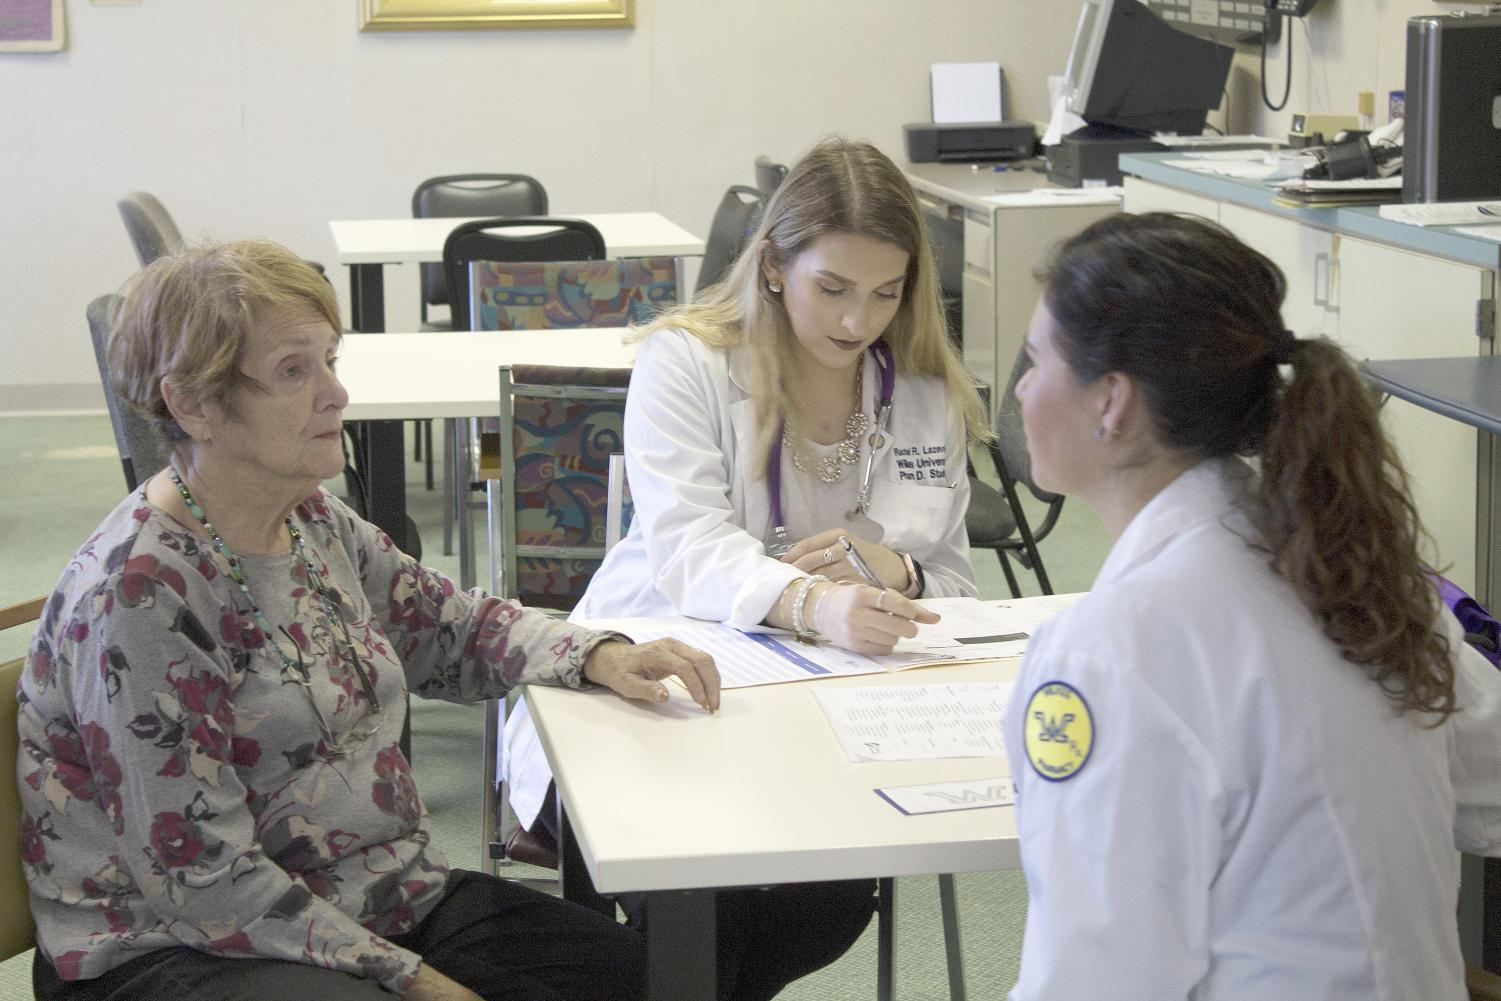 Barbara Greenberg had her medication reviewed by pharmacy students, Rachel Lazevnick and Emily Herron.